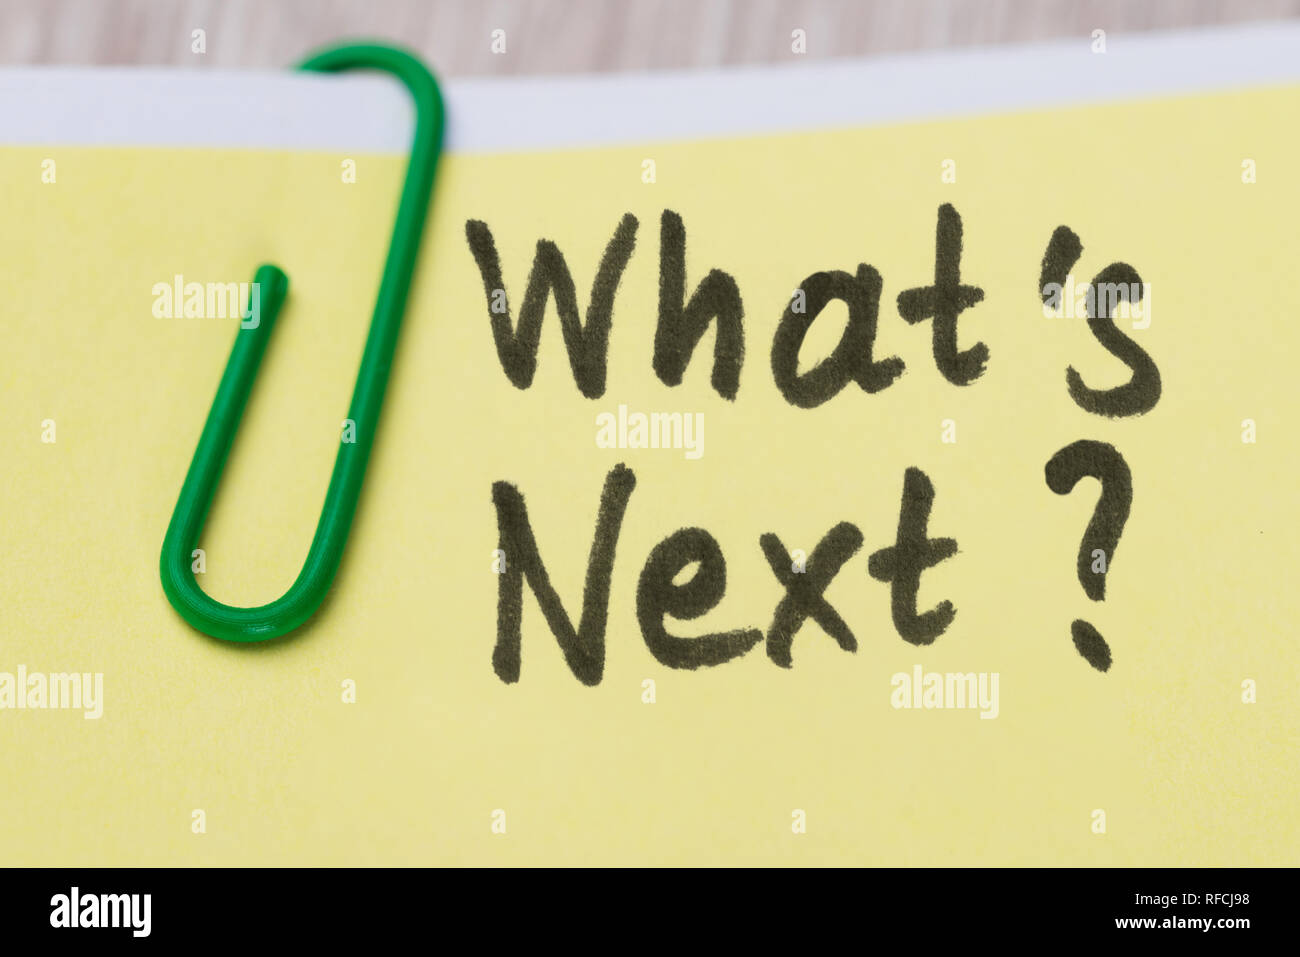 Close-up Of What's Next Text On Yellow Adhesive Notes With Green Paper Clip - Stock Image